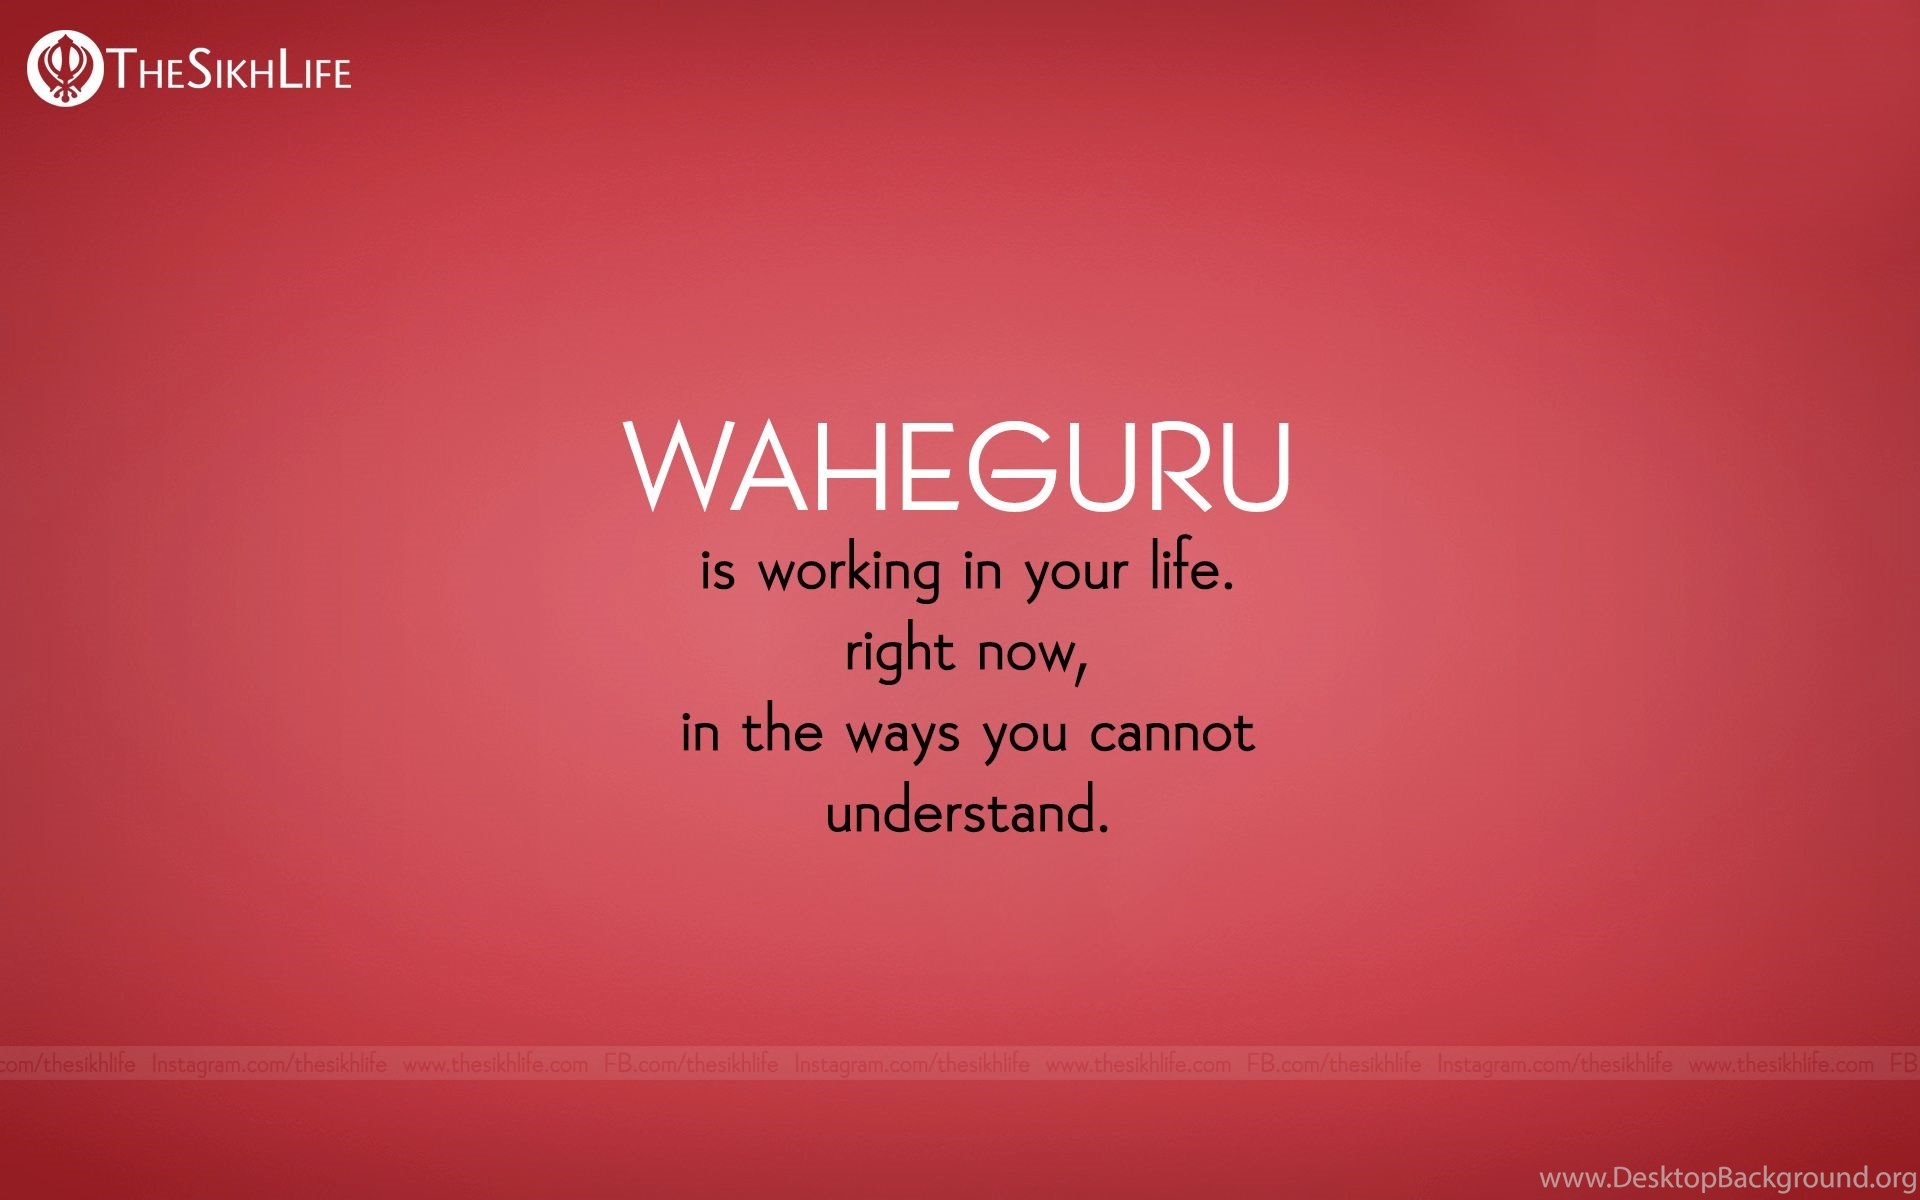 Sikh Wallpapers Hd For Iphone 5 Waheguru Quotes Wallpapers Archives Sikhs Official Website